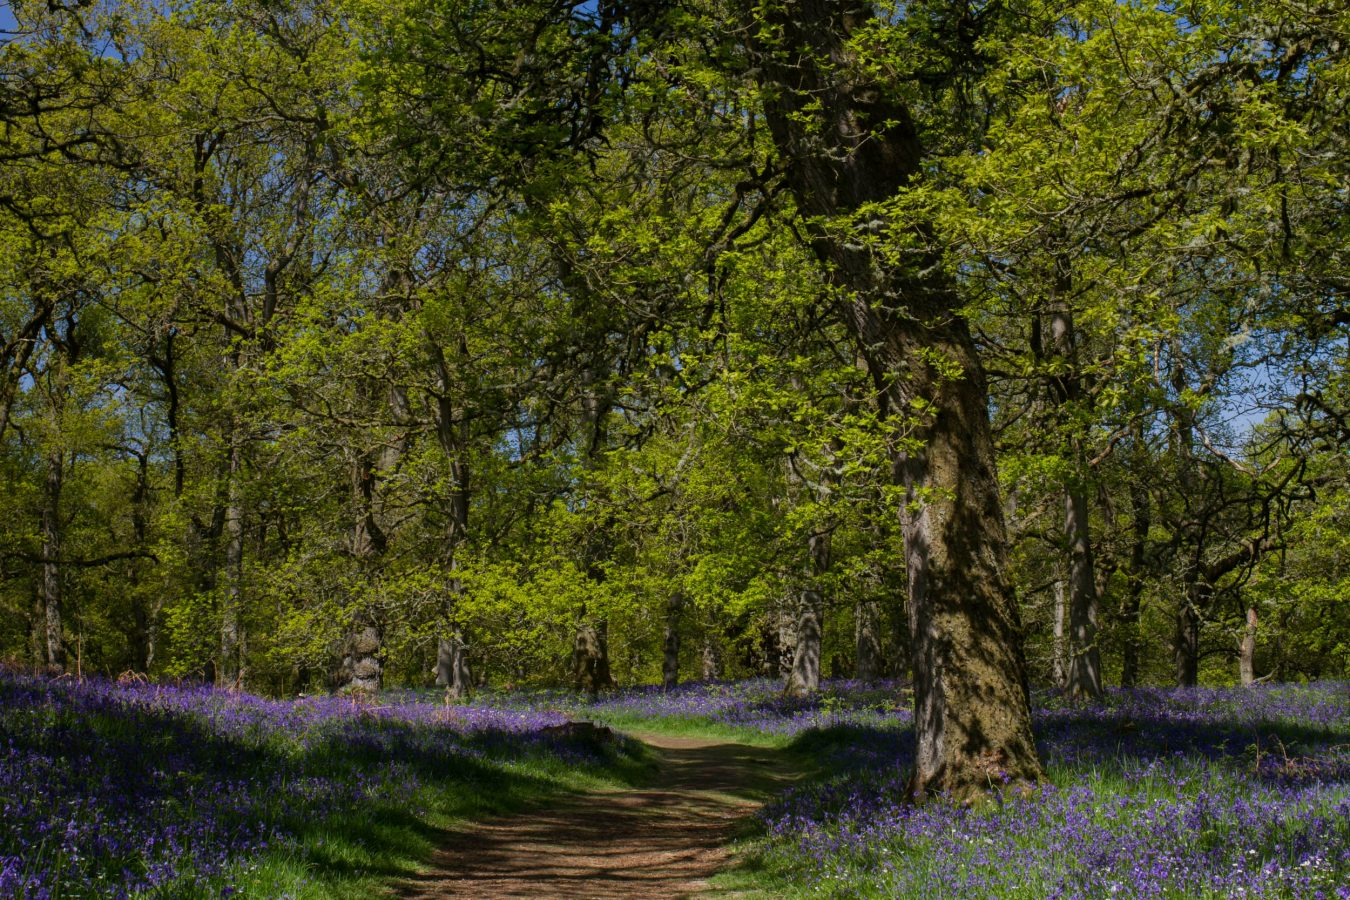 Bluebell woodland in Perthshire, Scotlan